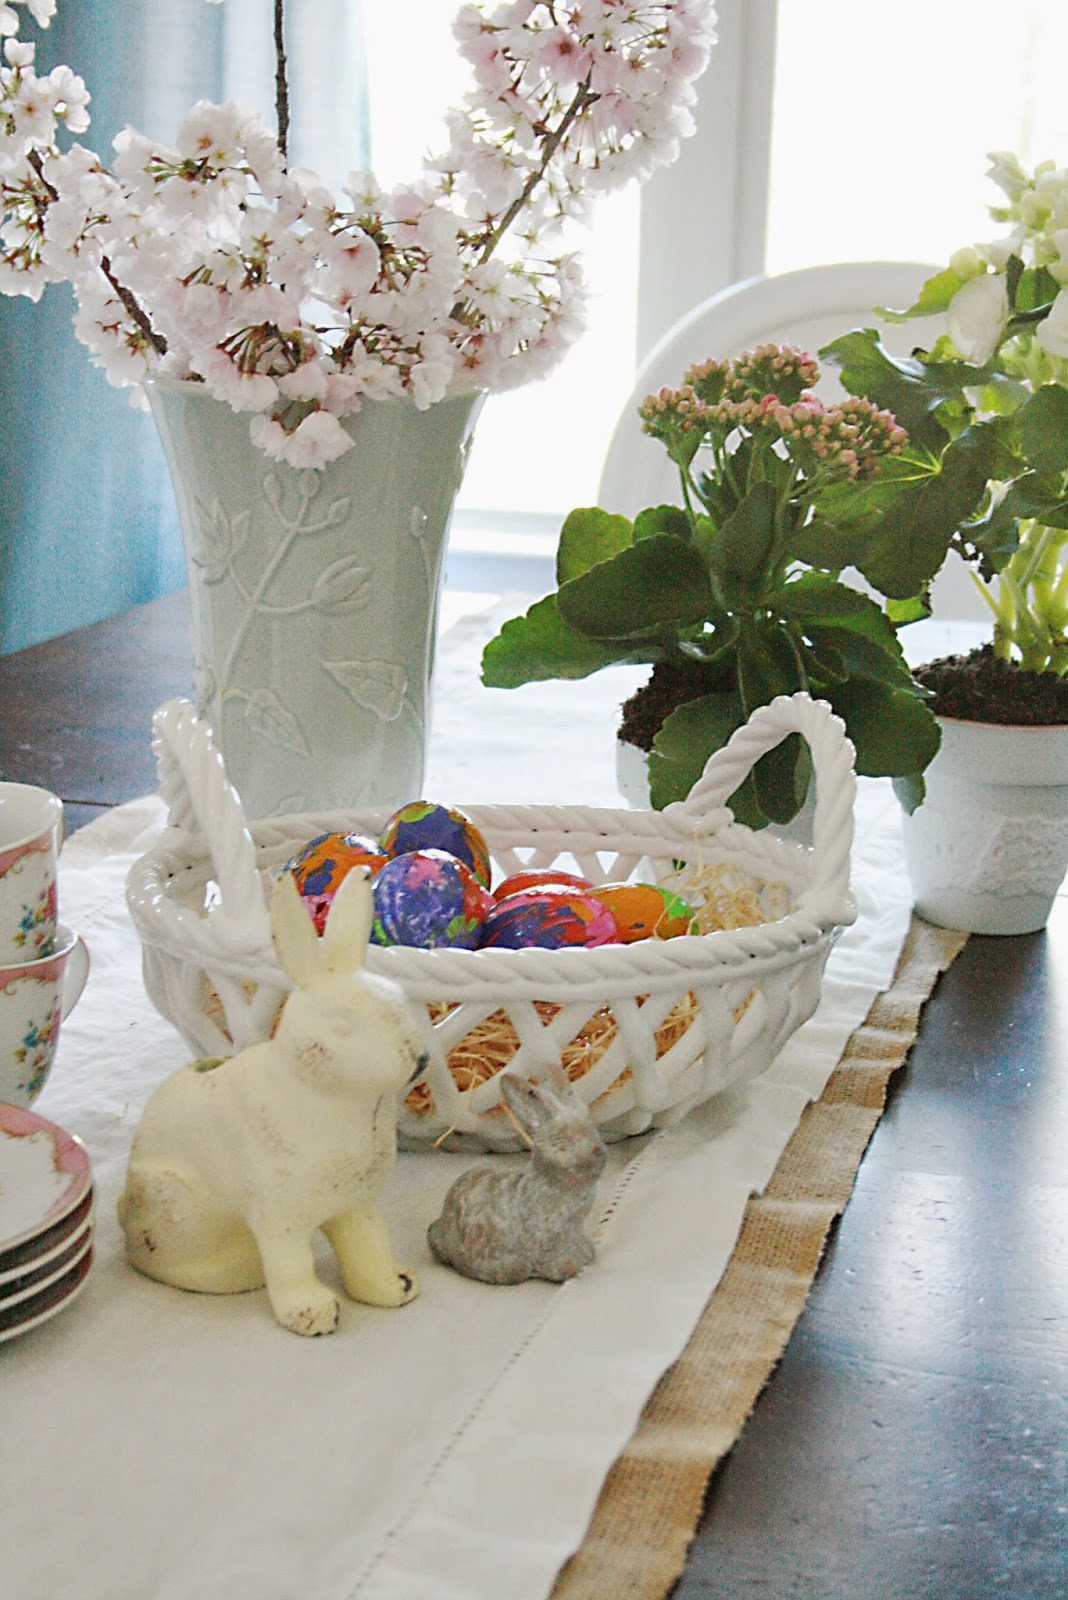 easter eggs decorating and table with spring flowers